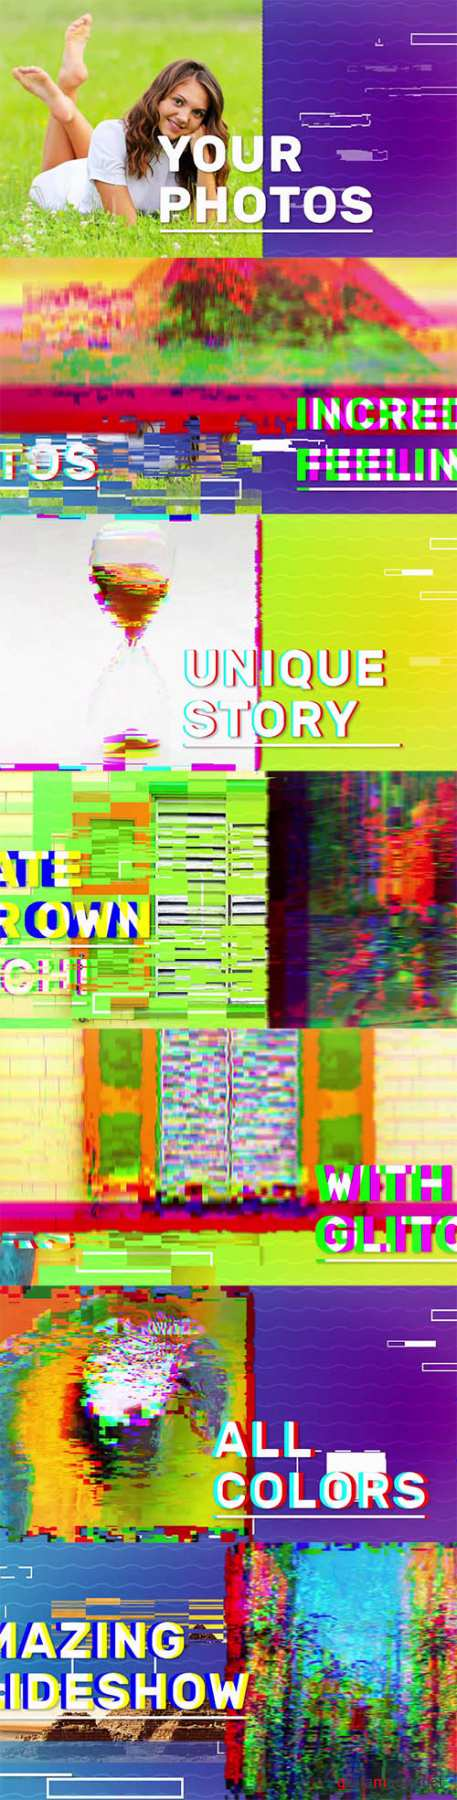 MA - Glitch Slideshow 97881